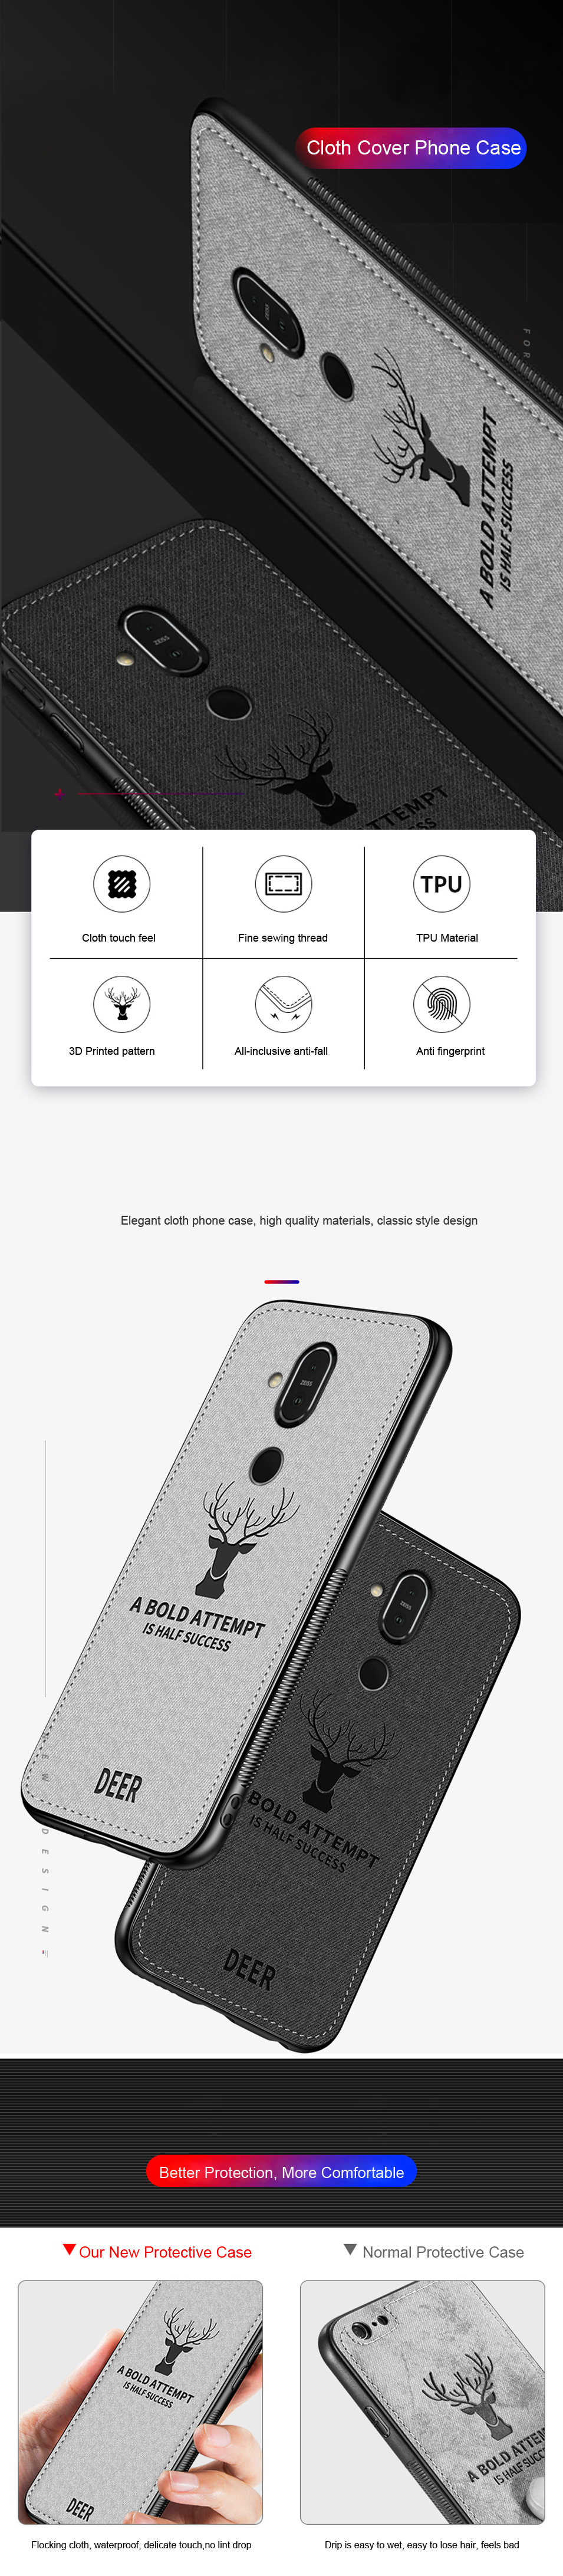 DEER Patterned Classic Retro Cloth Cases for Nokia 7 Plus x7 x6 x5 8 Sirocco Case Soft Back Cover For Nokia X7 X6 X5 Shell Coque (8)